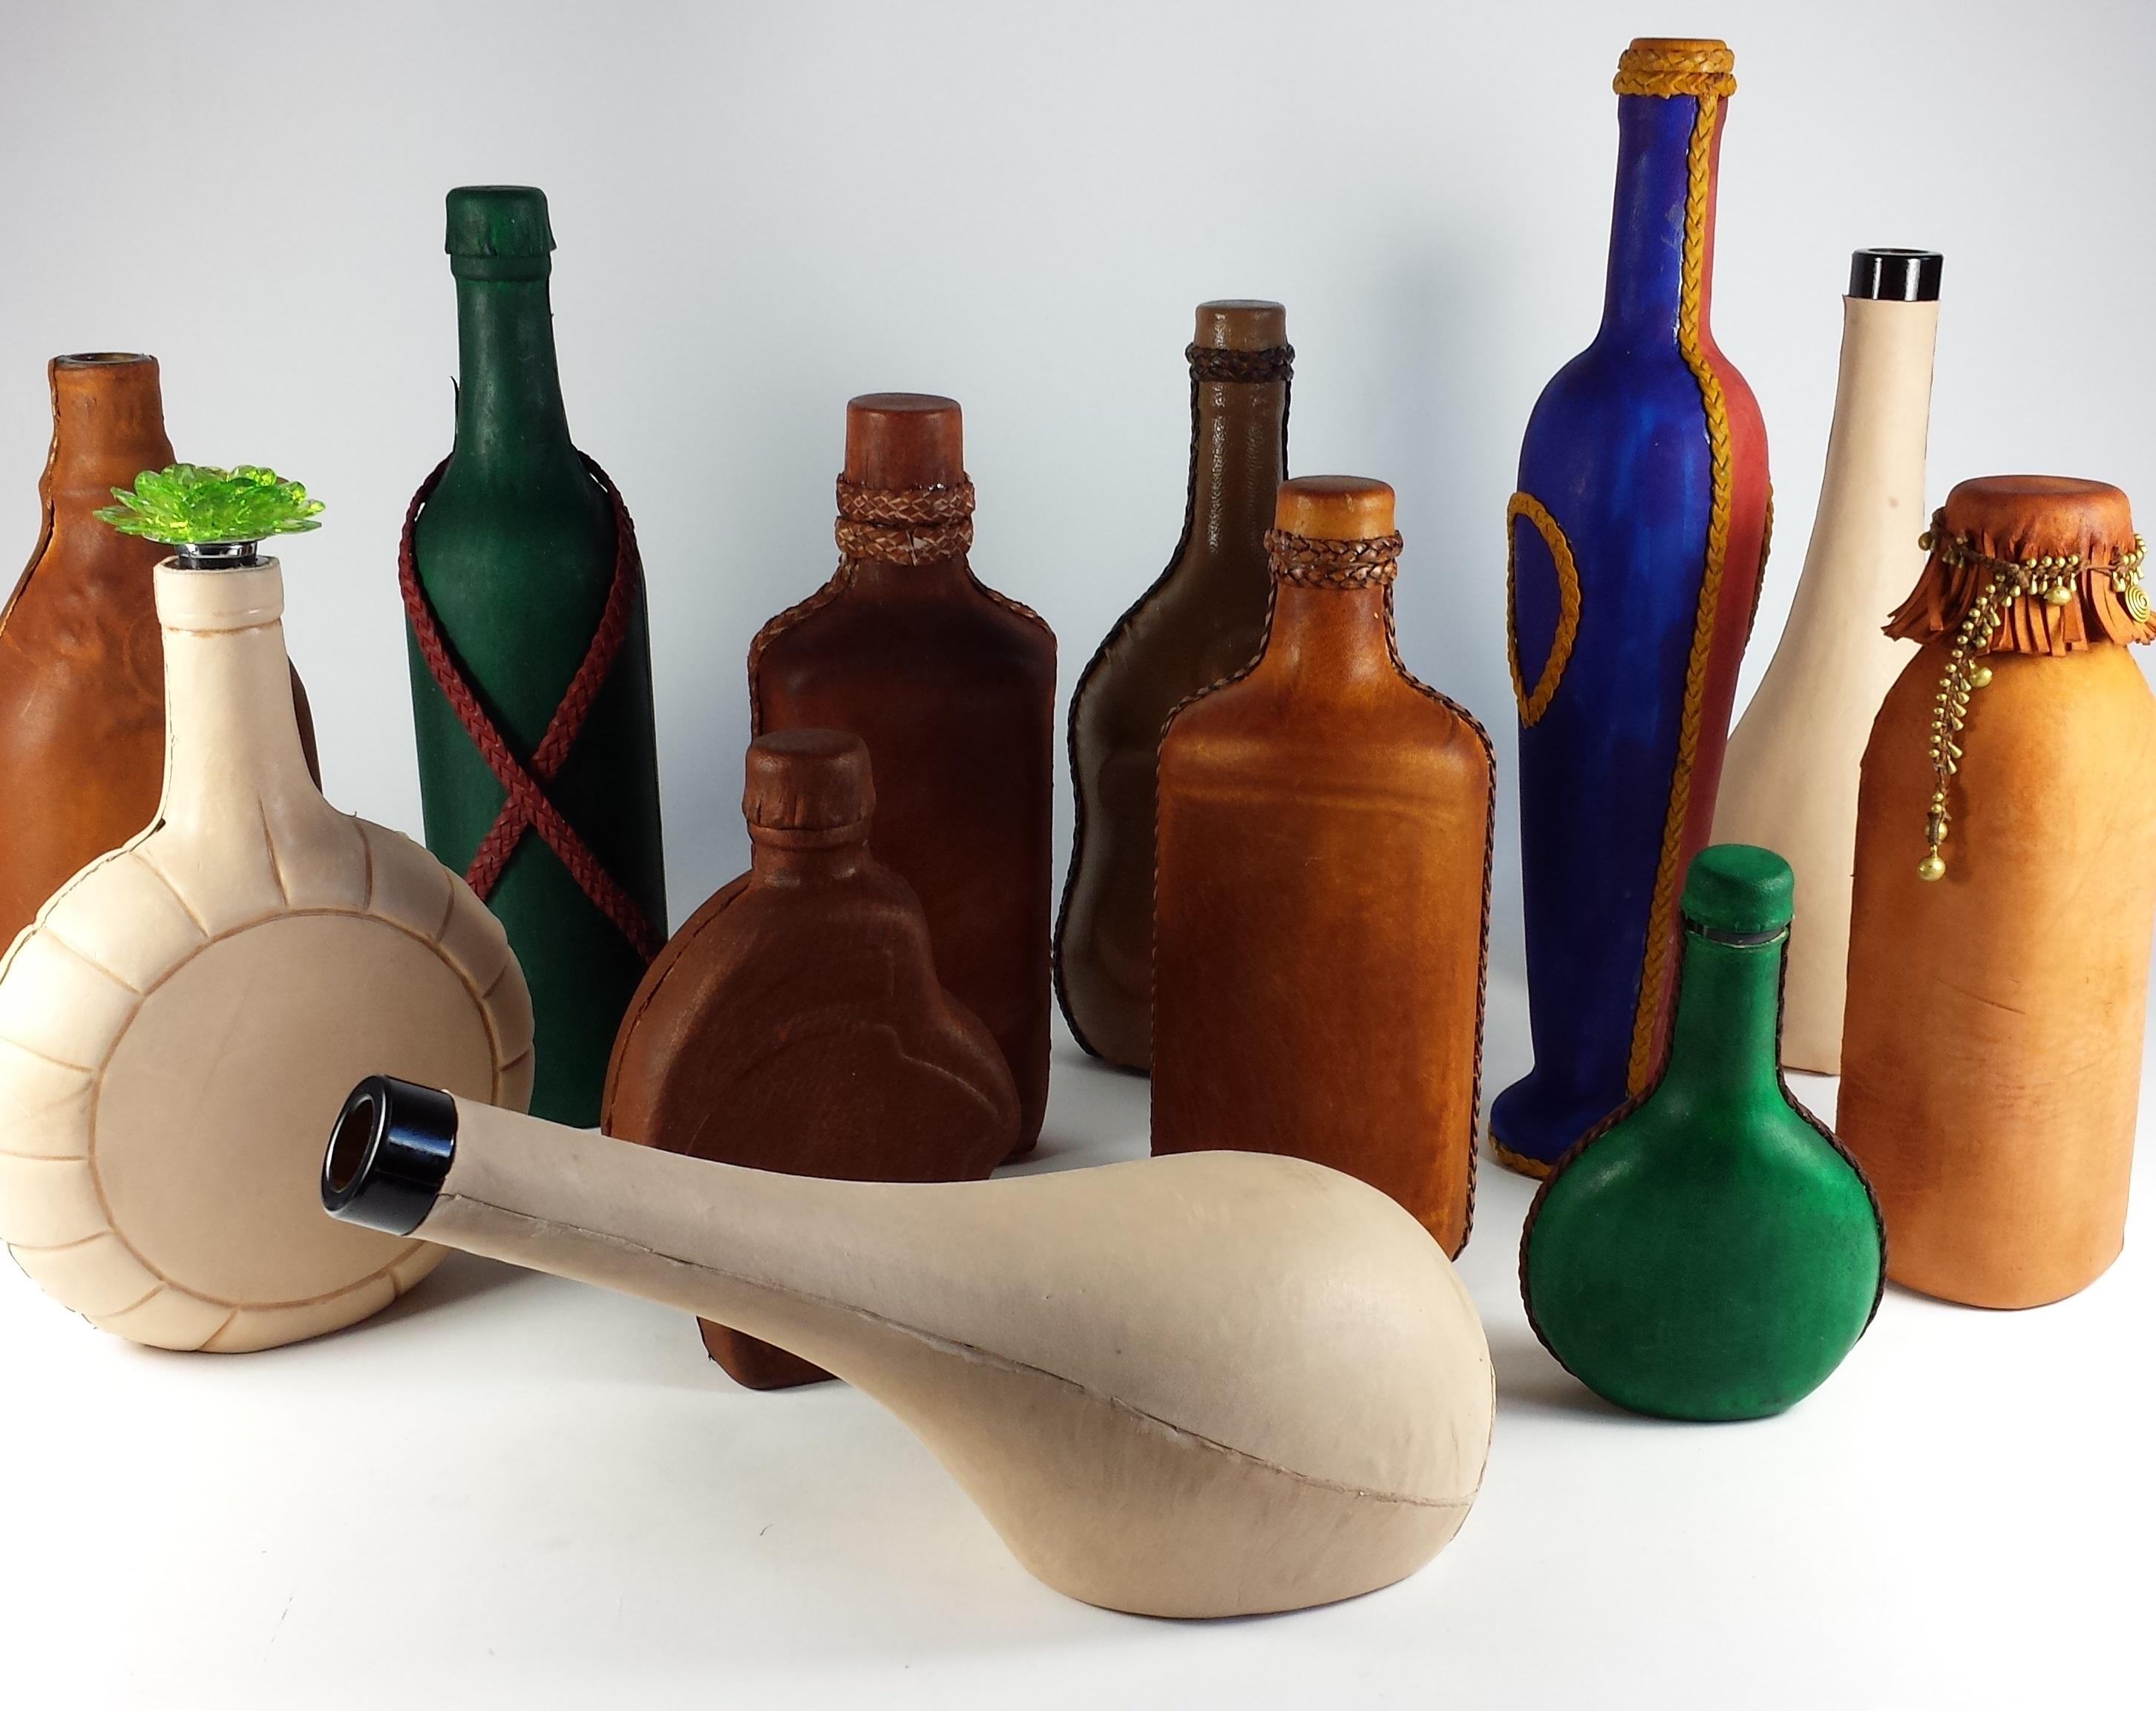 Covering a Glass Bottle with NZ's Sue Nelson